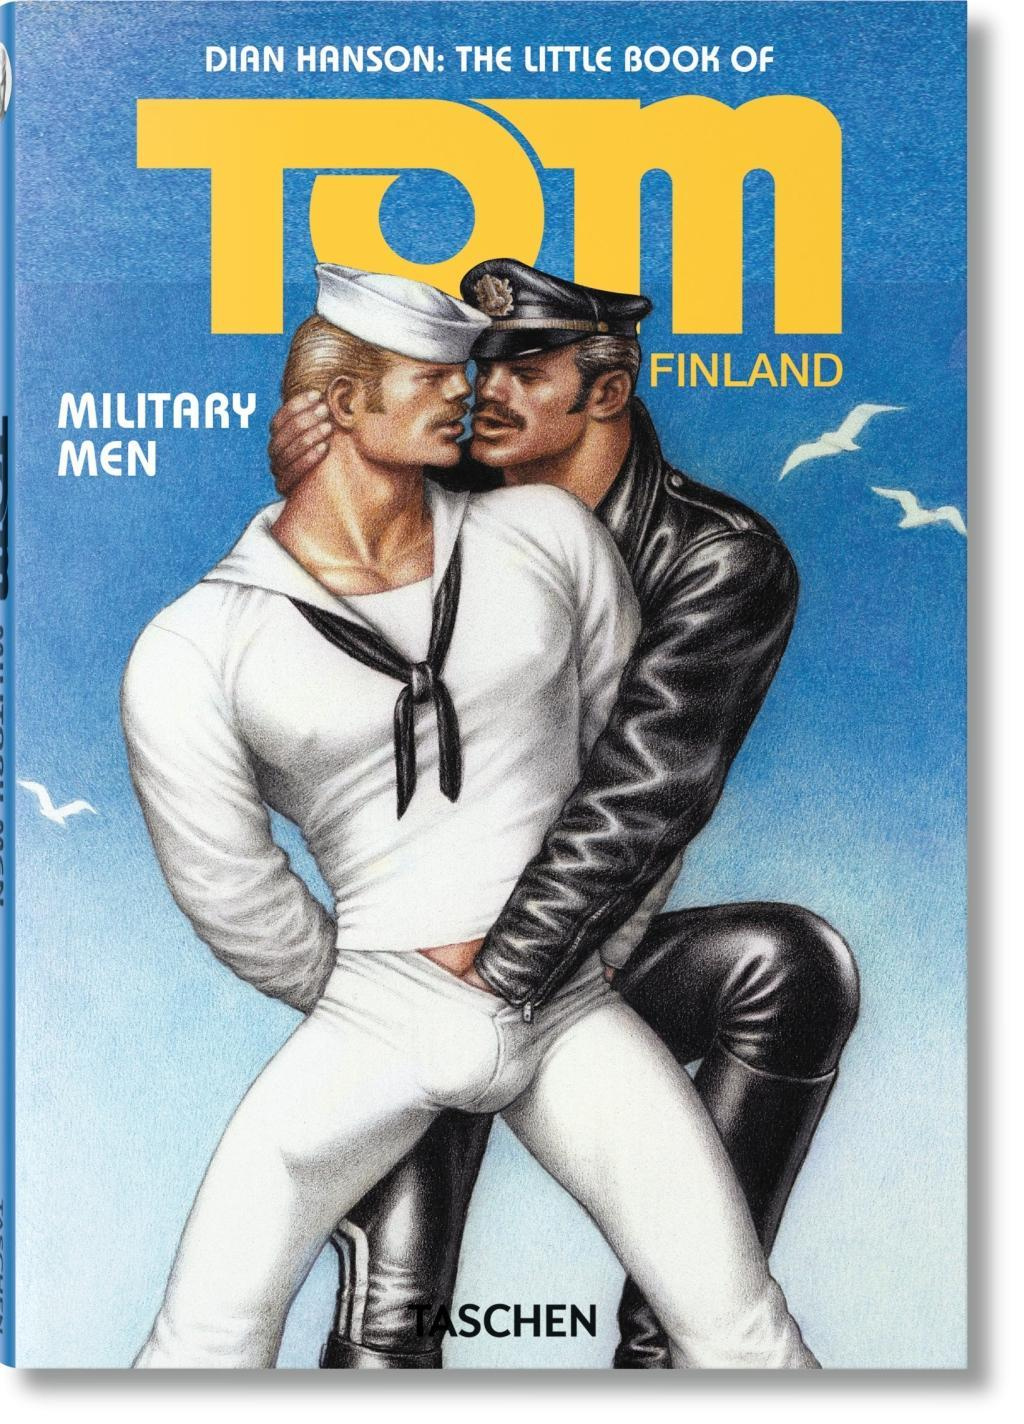 The Little Book of Tom of FinlandMilitary Men